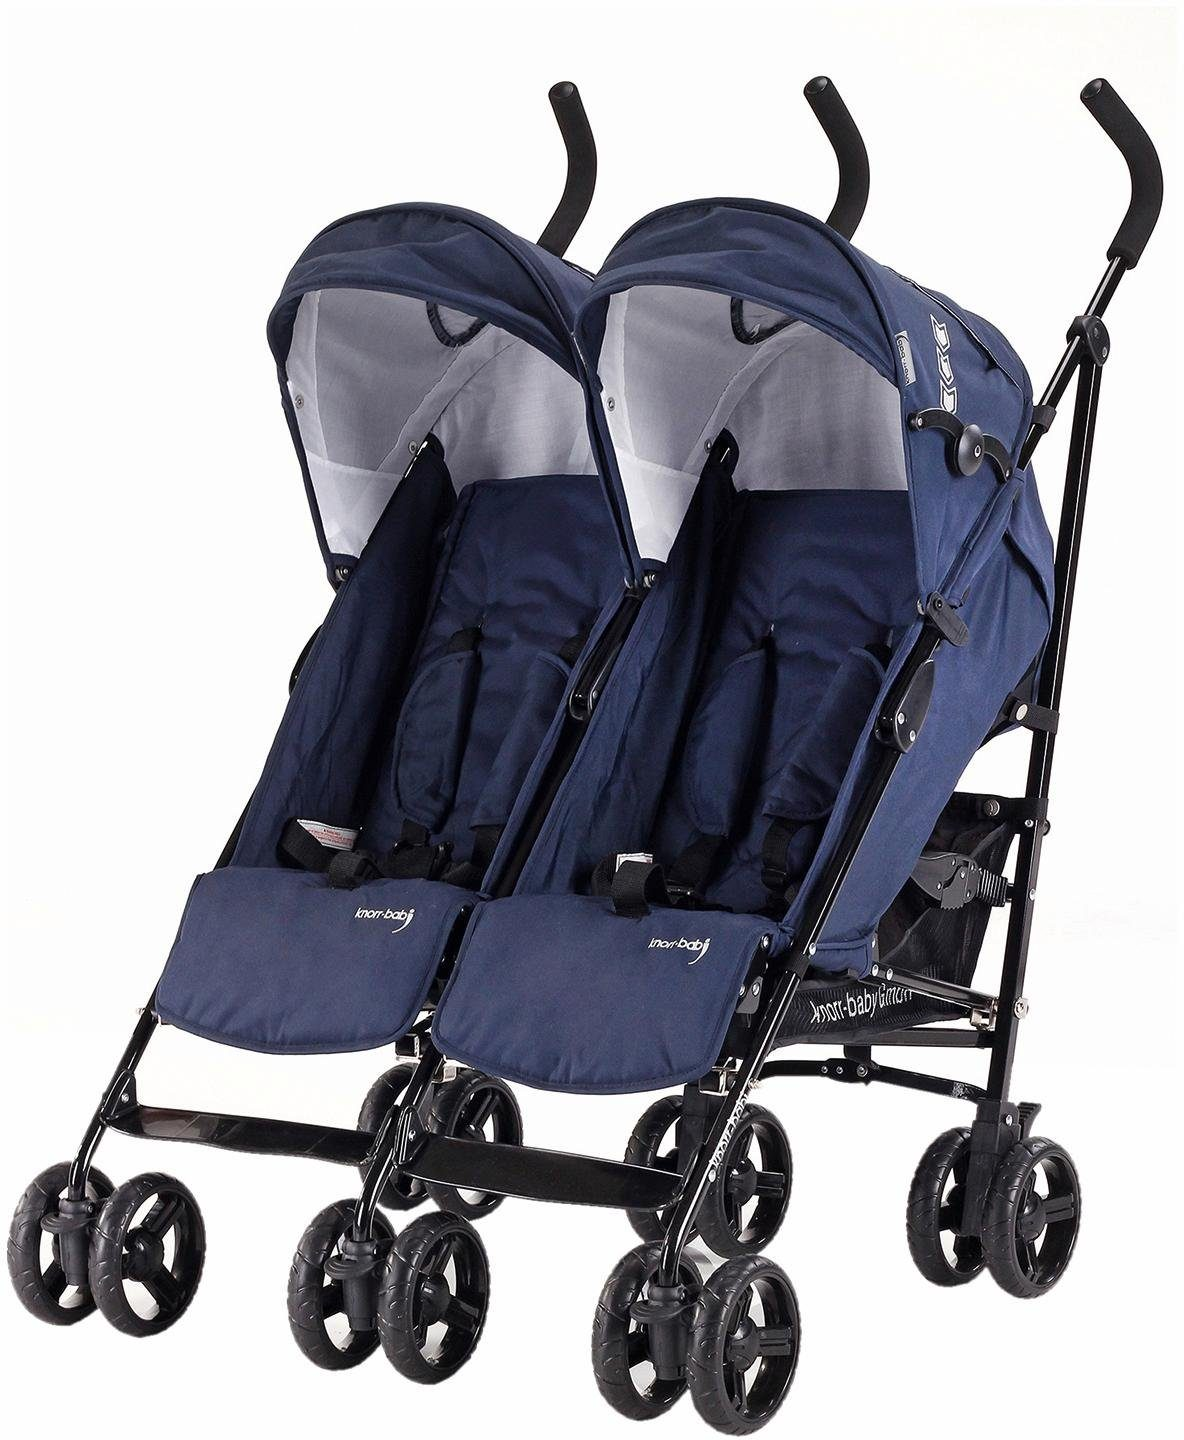 knorr-baby Zwillingsbuggy, »Side by Side, navy blue«